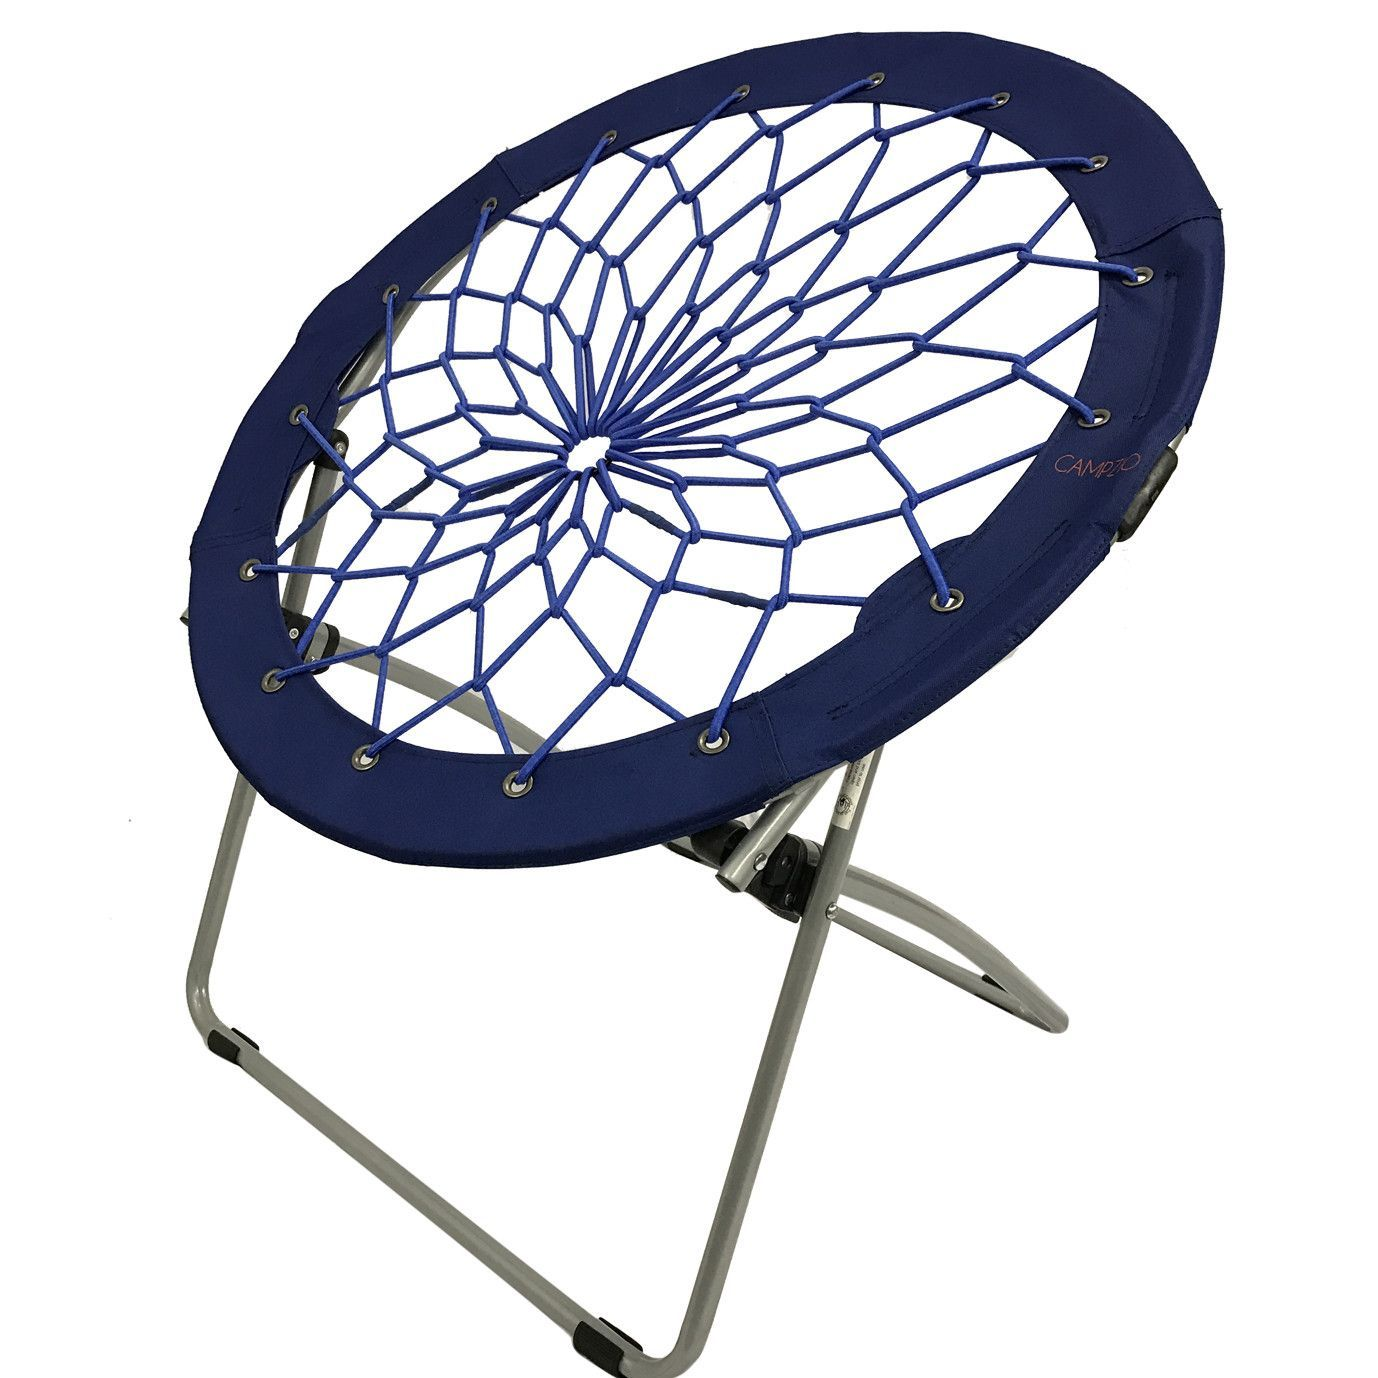 Bungi Chair Campzio Bungee Chair Round Folding Comfortable Lightweight